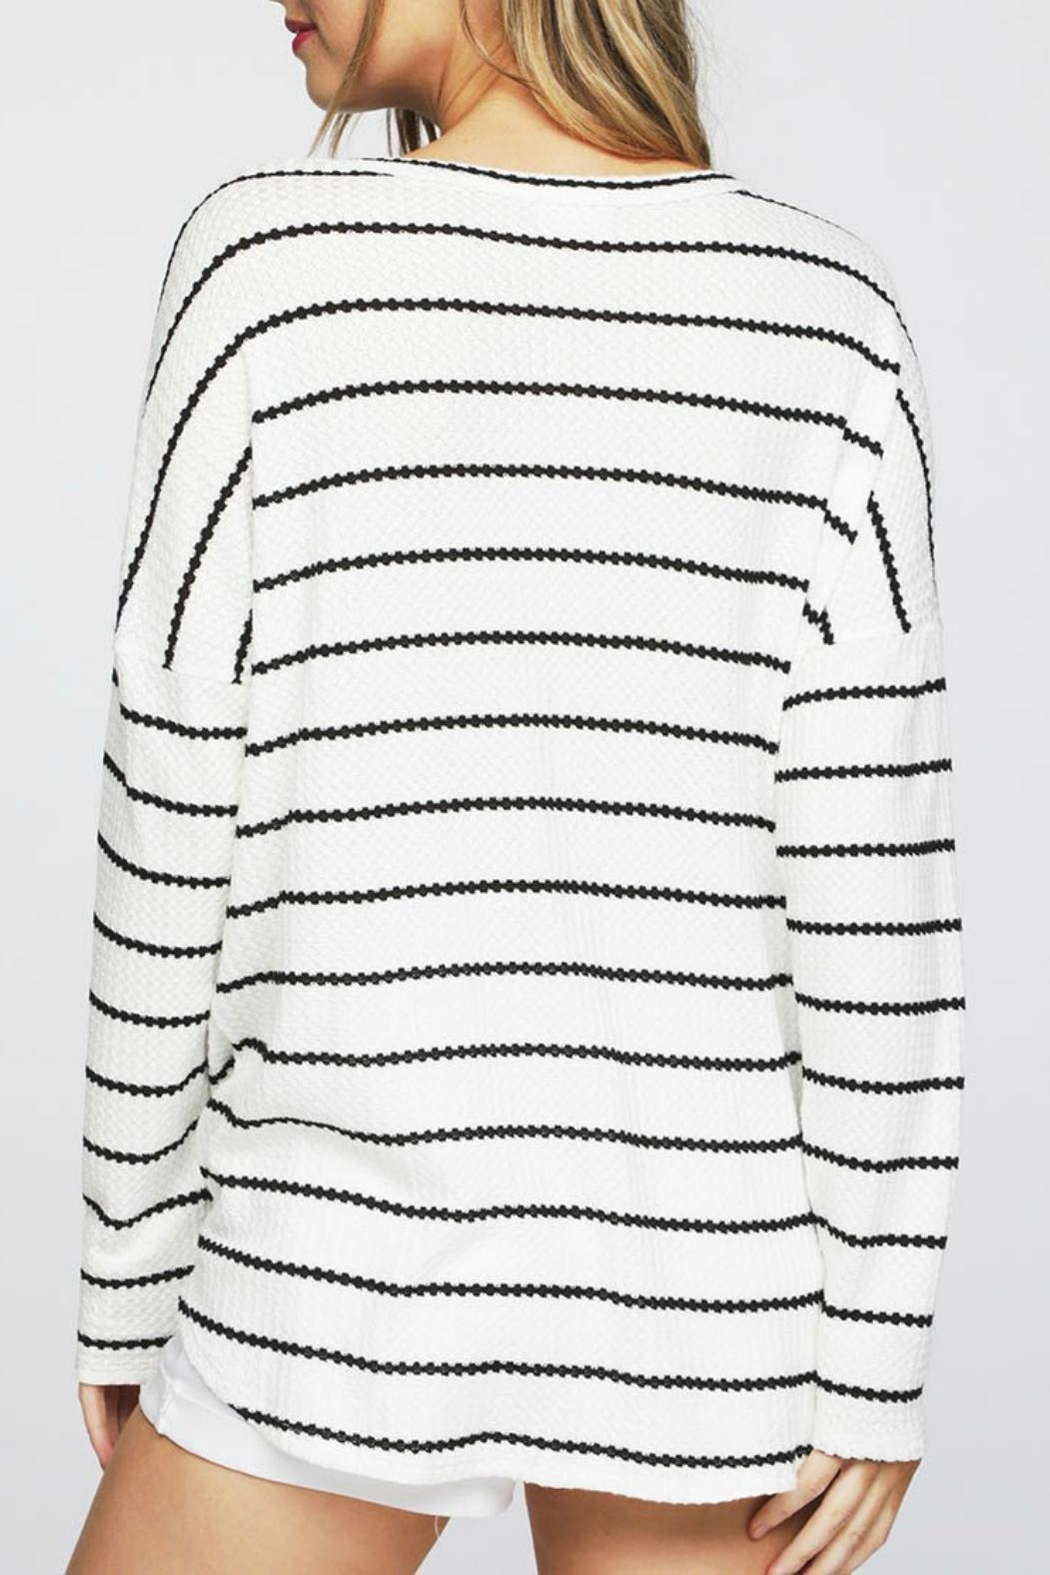 Pretty Little Things Waffle Knit Top - Front Full Image